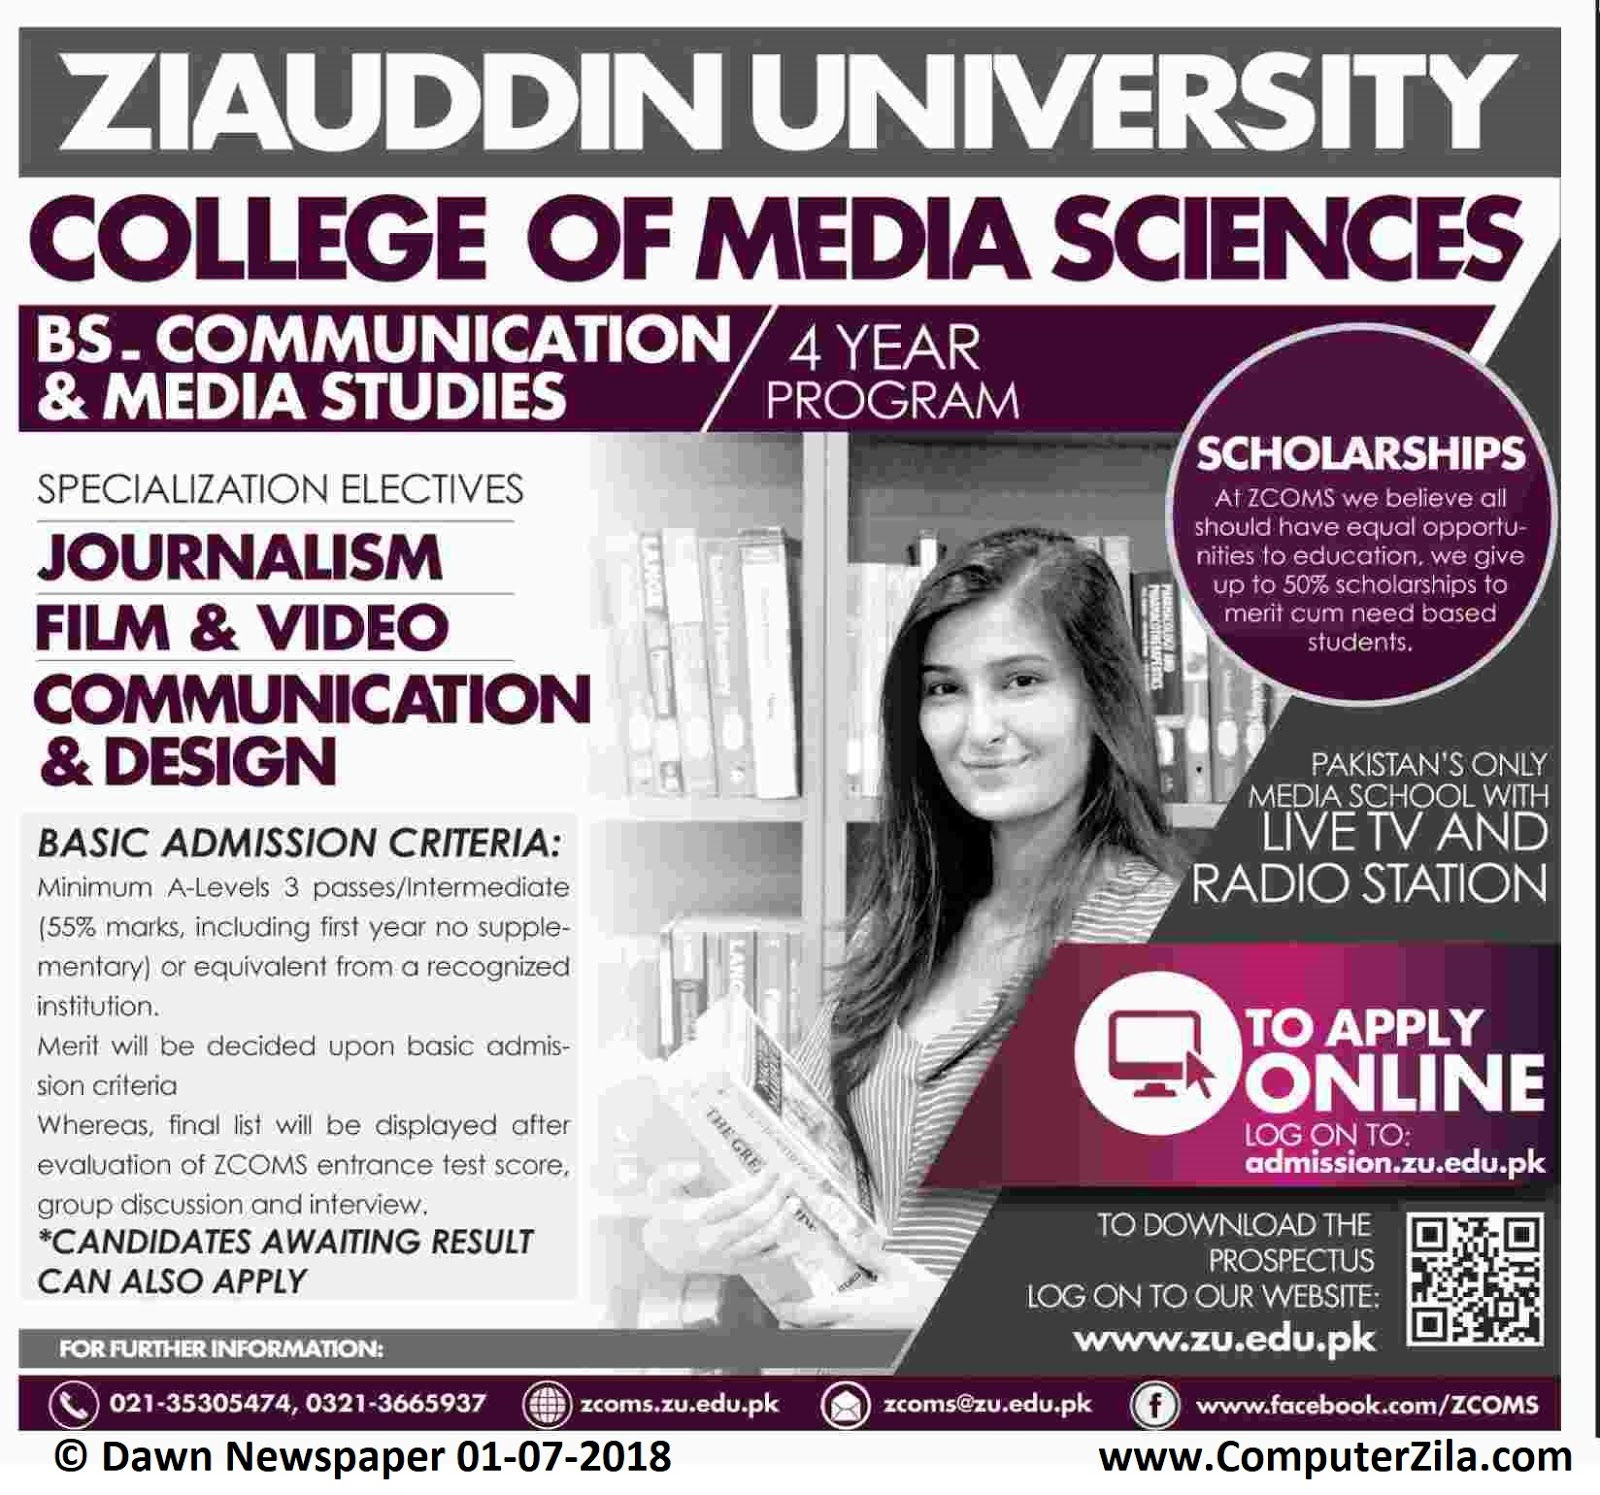 Ziauddin University College of Media Sciences Admissions Fall 2018